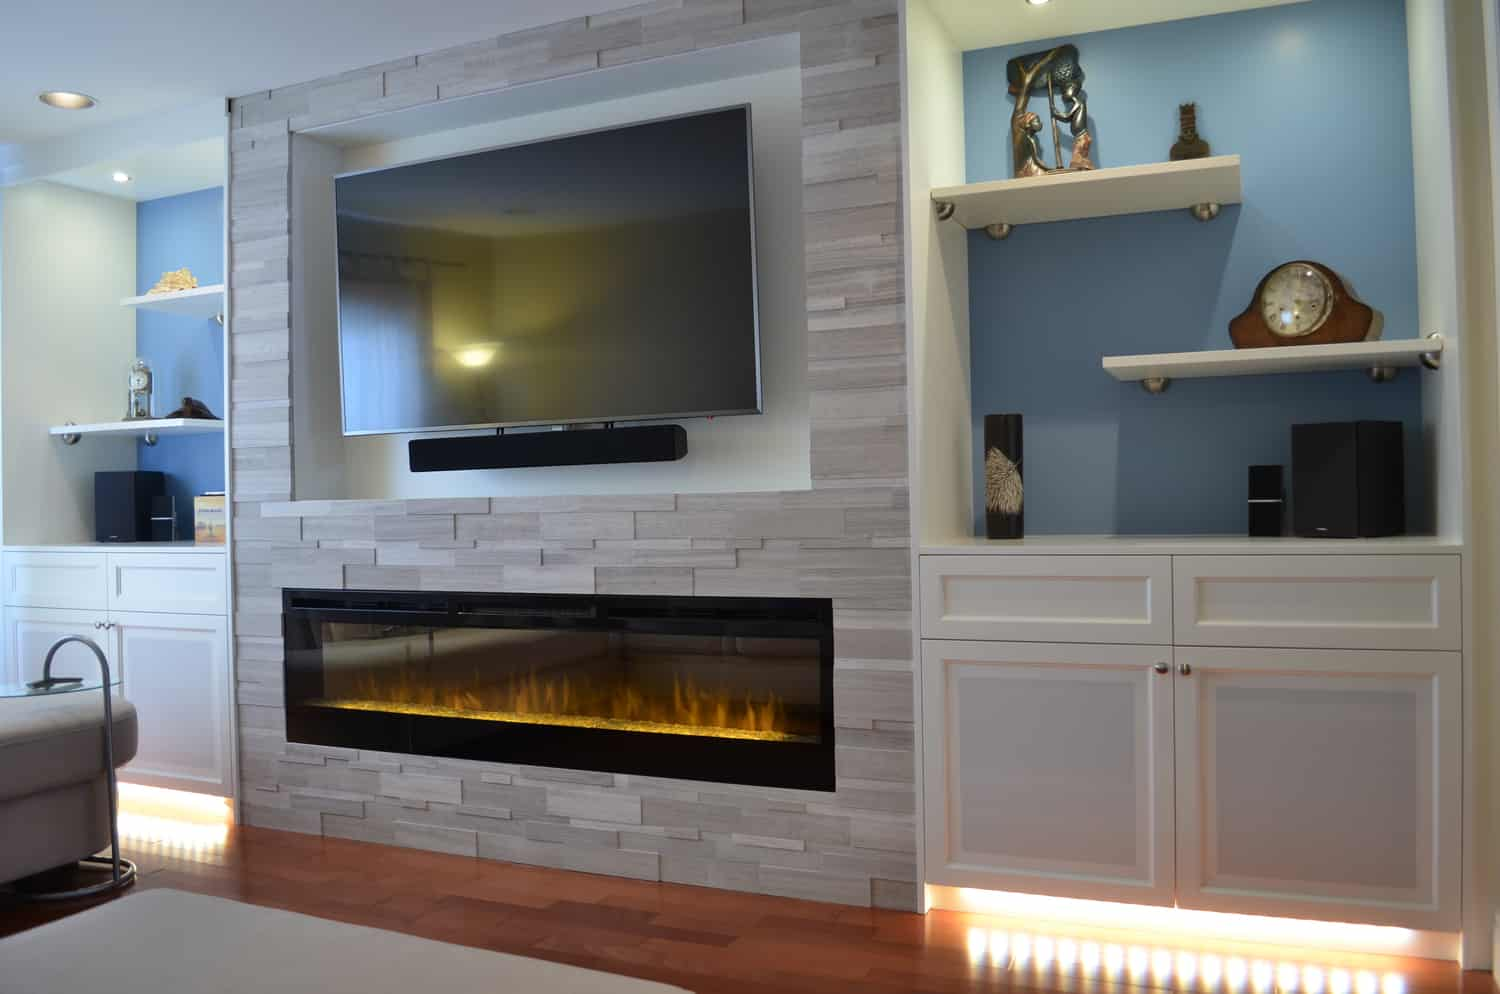 How to convert a wood-burning fireplace to electric.